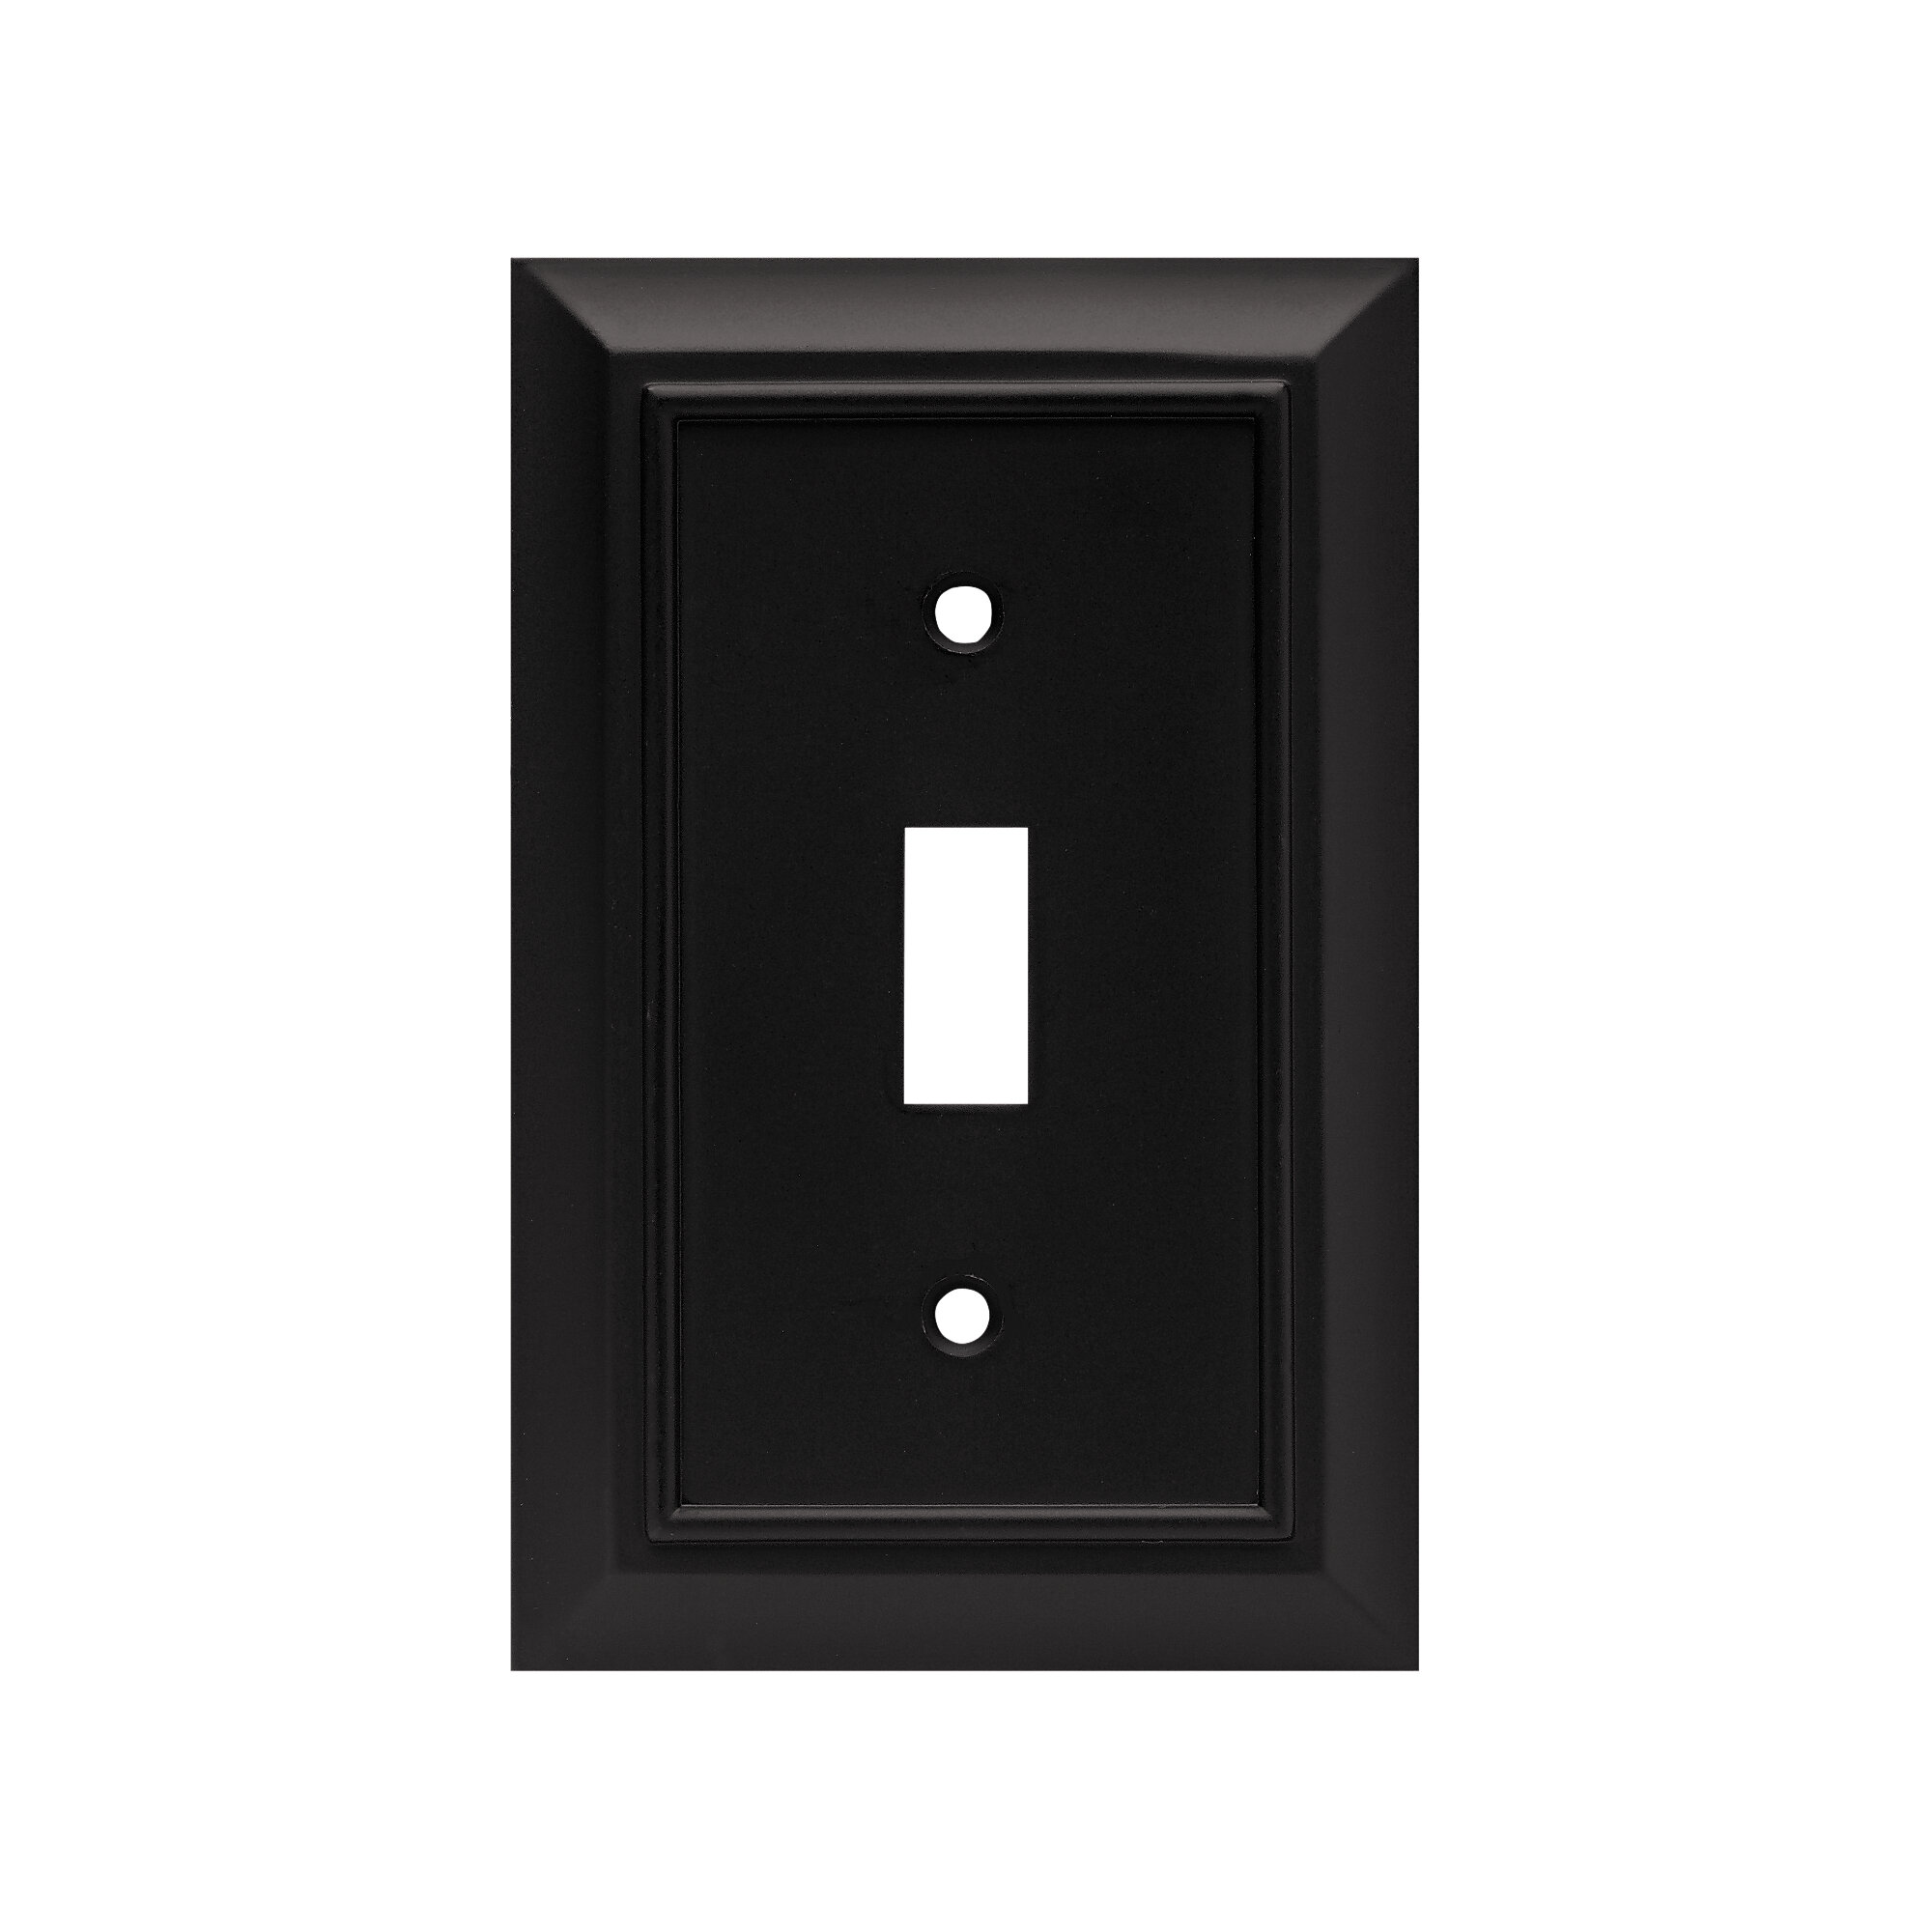 Franklin Brass Architectural 1 Gang Toggle Light Switch Wall Plate Reviews Wayfair